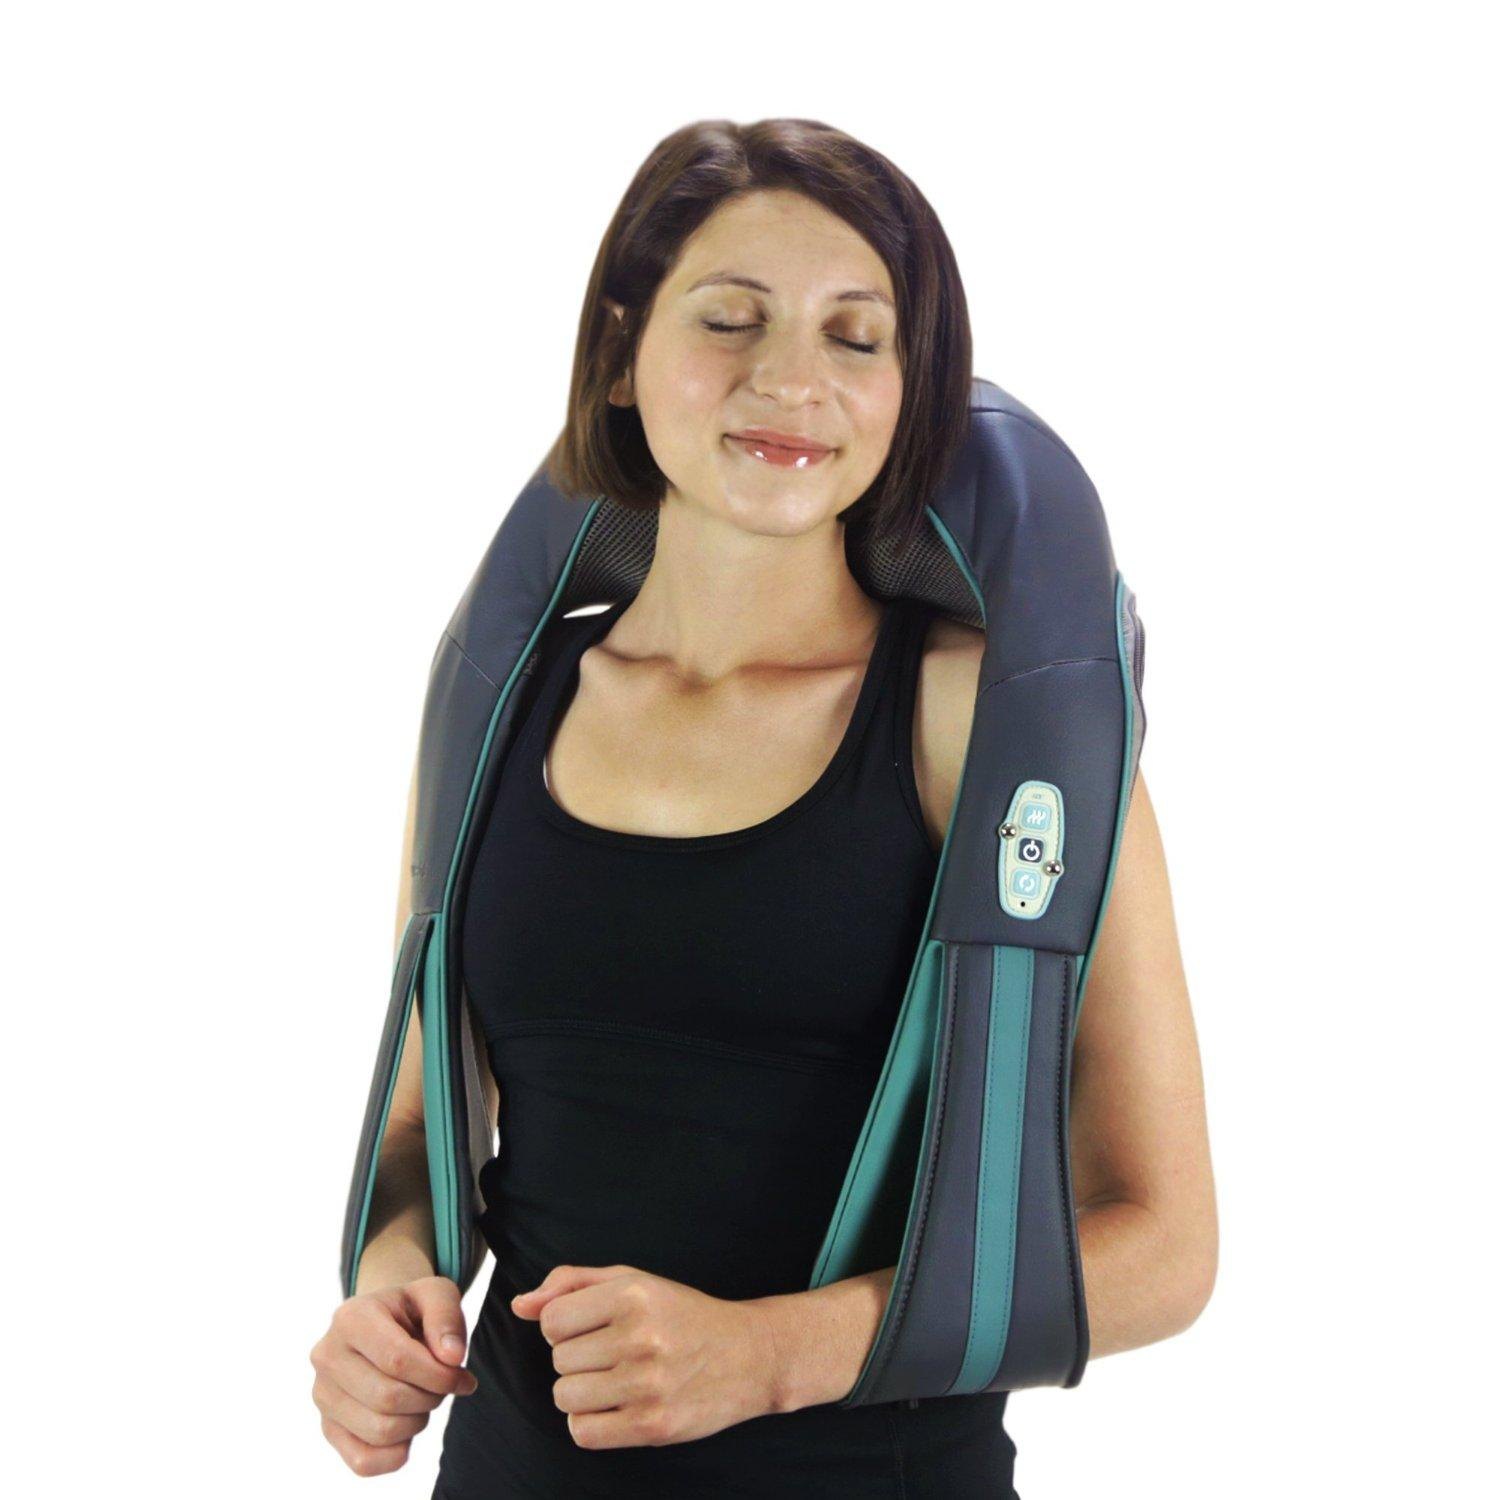 $97 + Free Shipping truMedic Instashiatsu Plus Neck and Shoulder Massager Sale @ Amazon.com